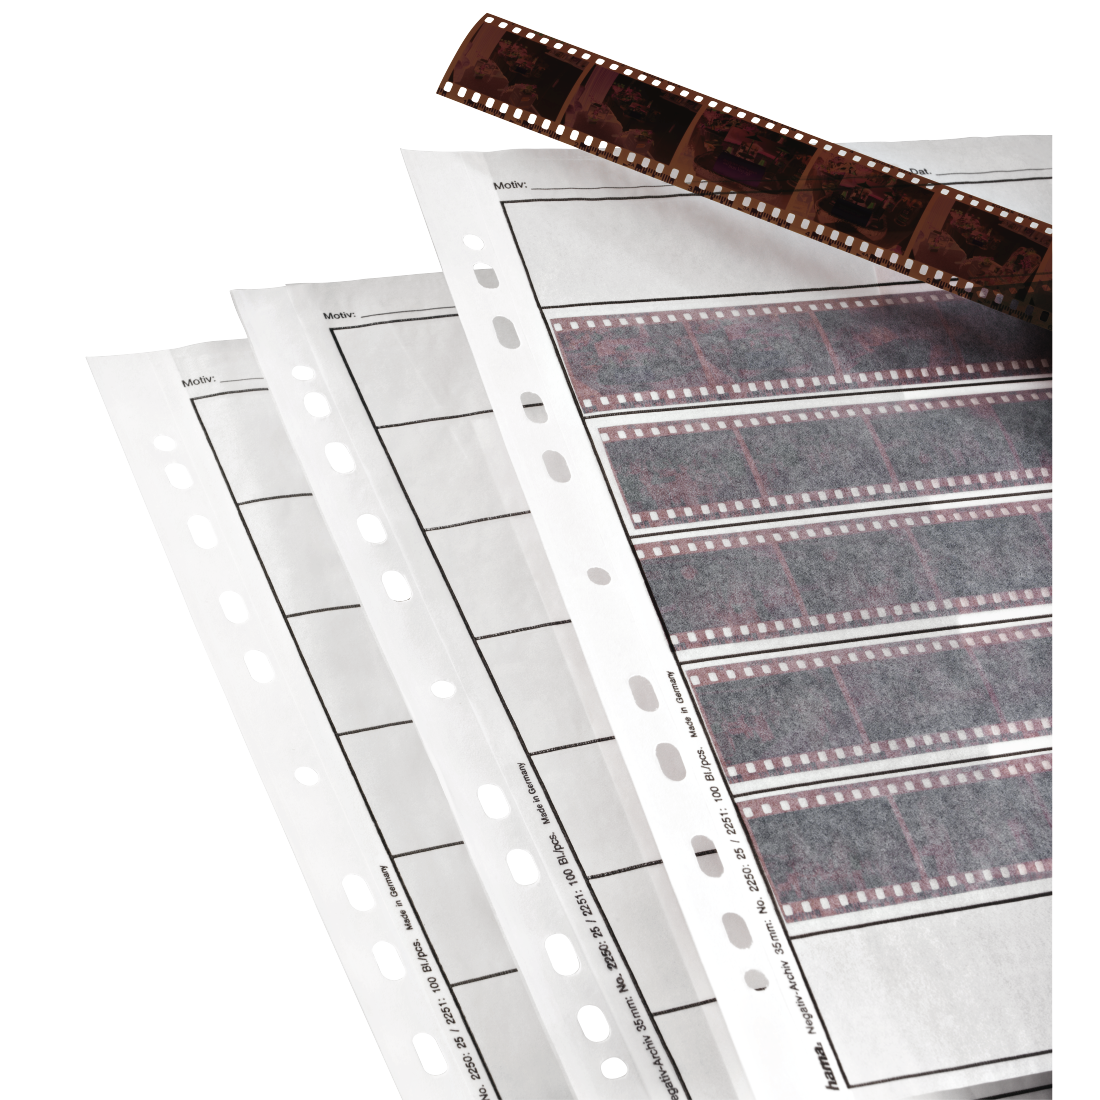 abx High-Res Image - Hama, Negative Sleeves, Parchment, 7 Strips of 6 Negatives, 24x36 mm, 100 pcs.